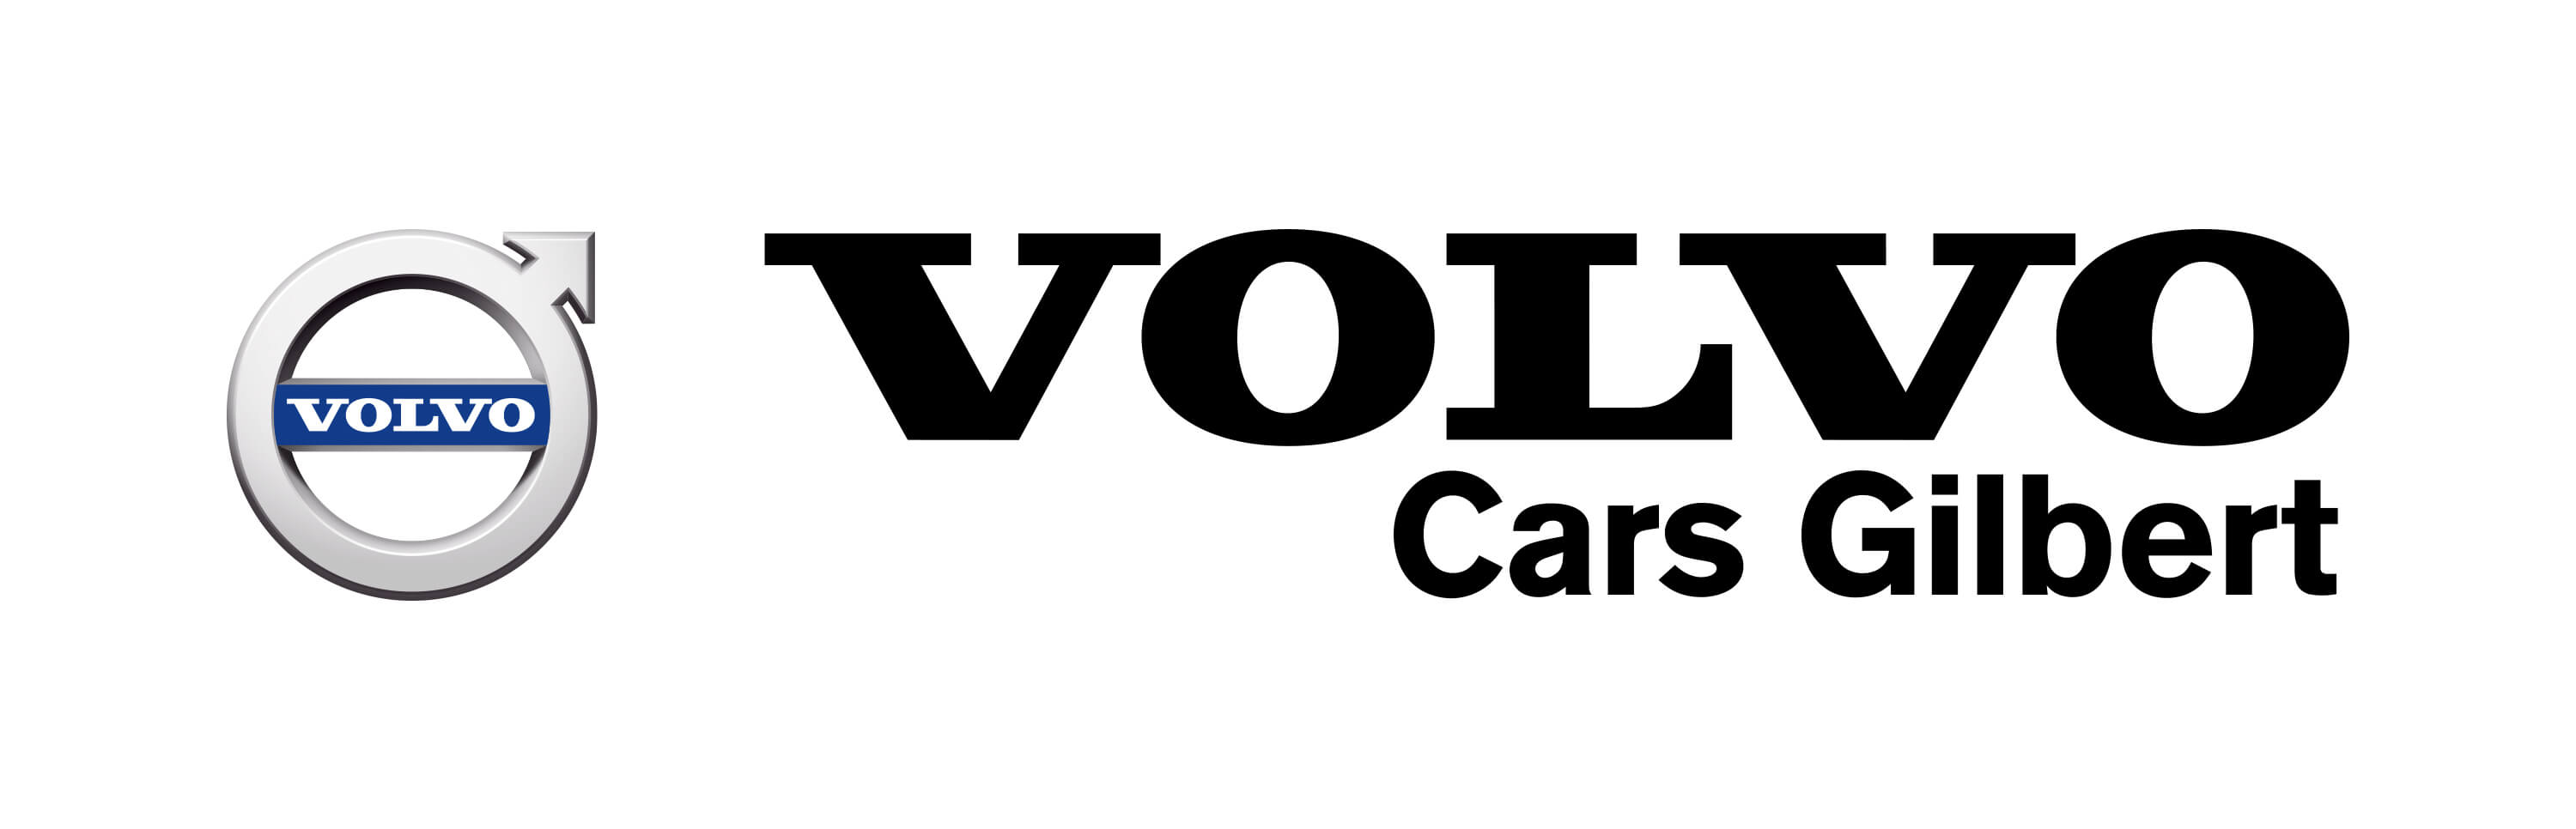 Volvo Cars Gilbert